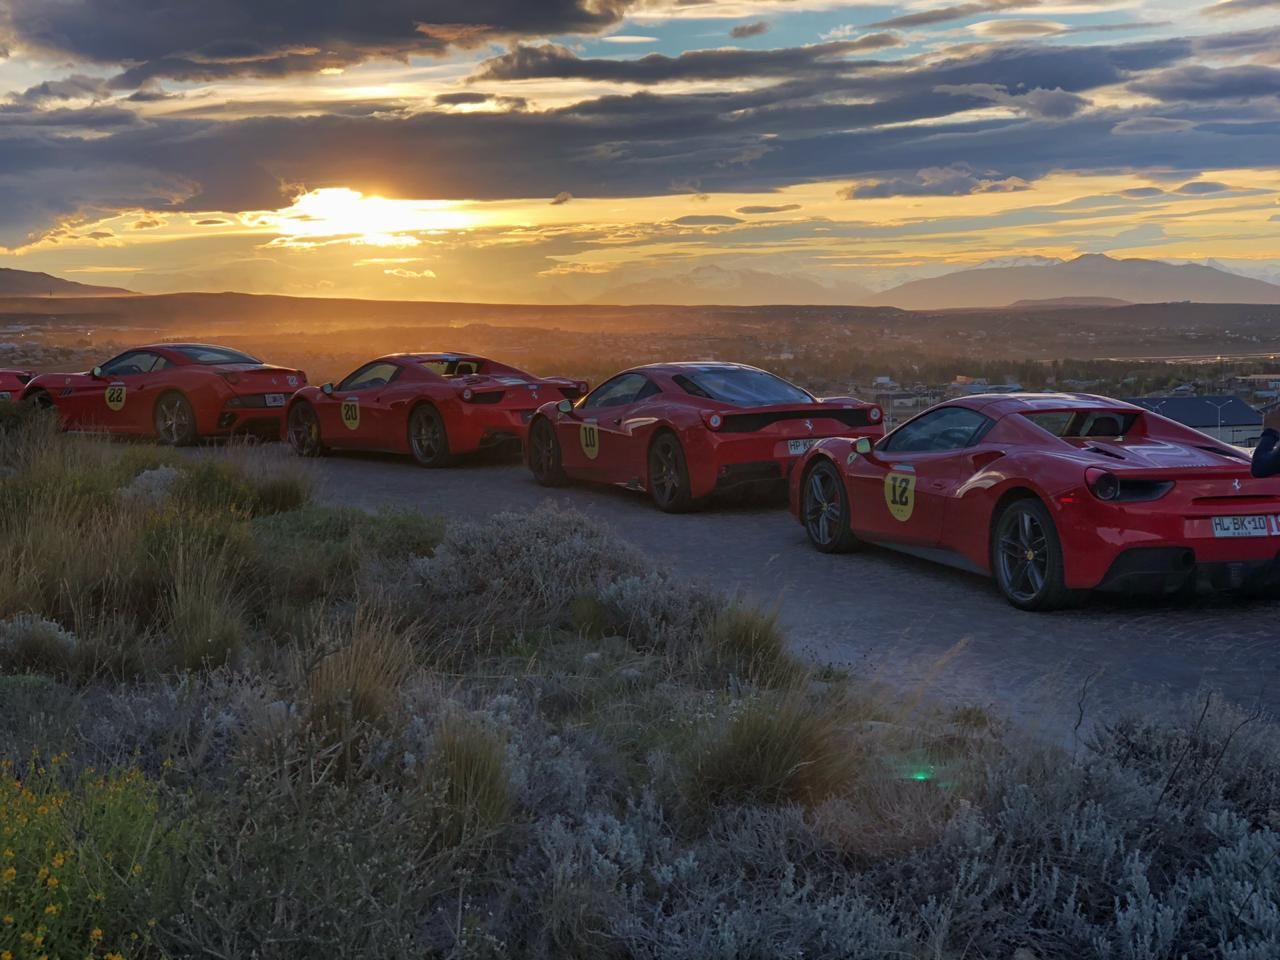 Ferrari Club Chile-2018 Passione Unica Rally-6